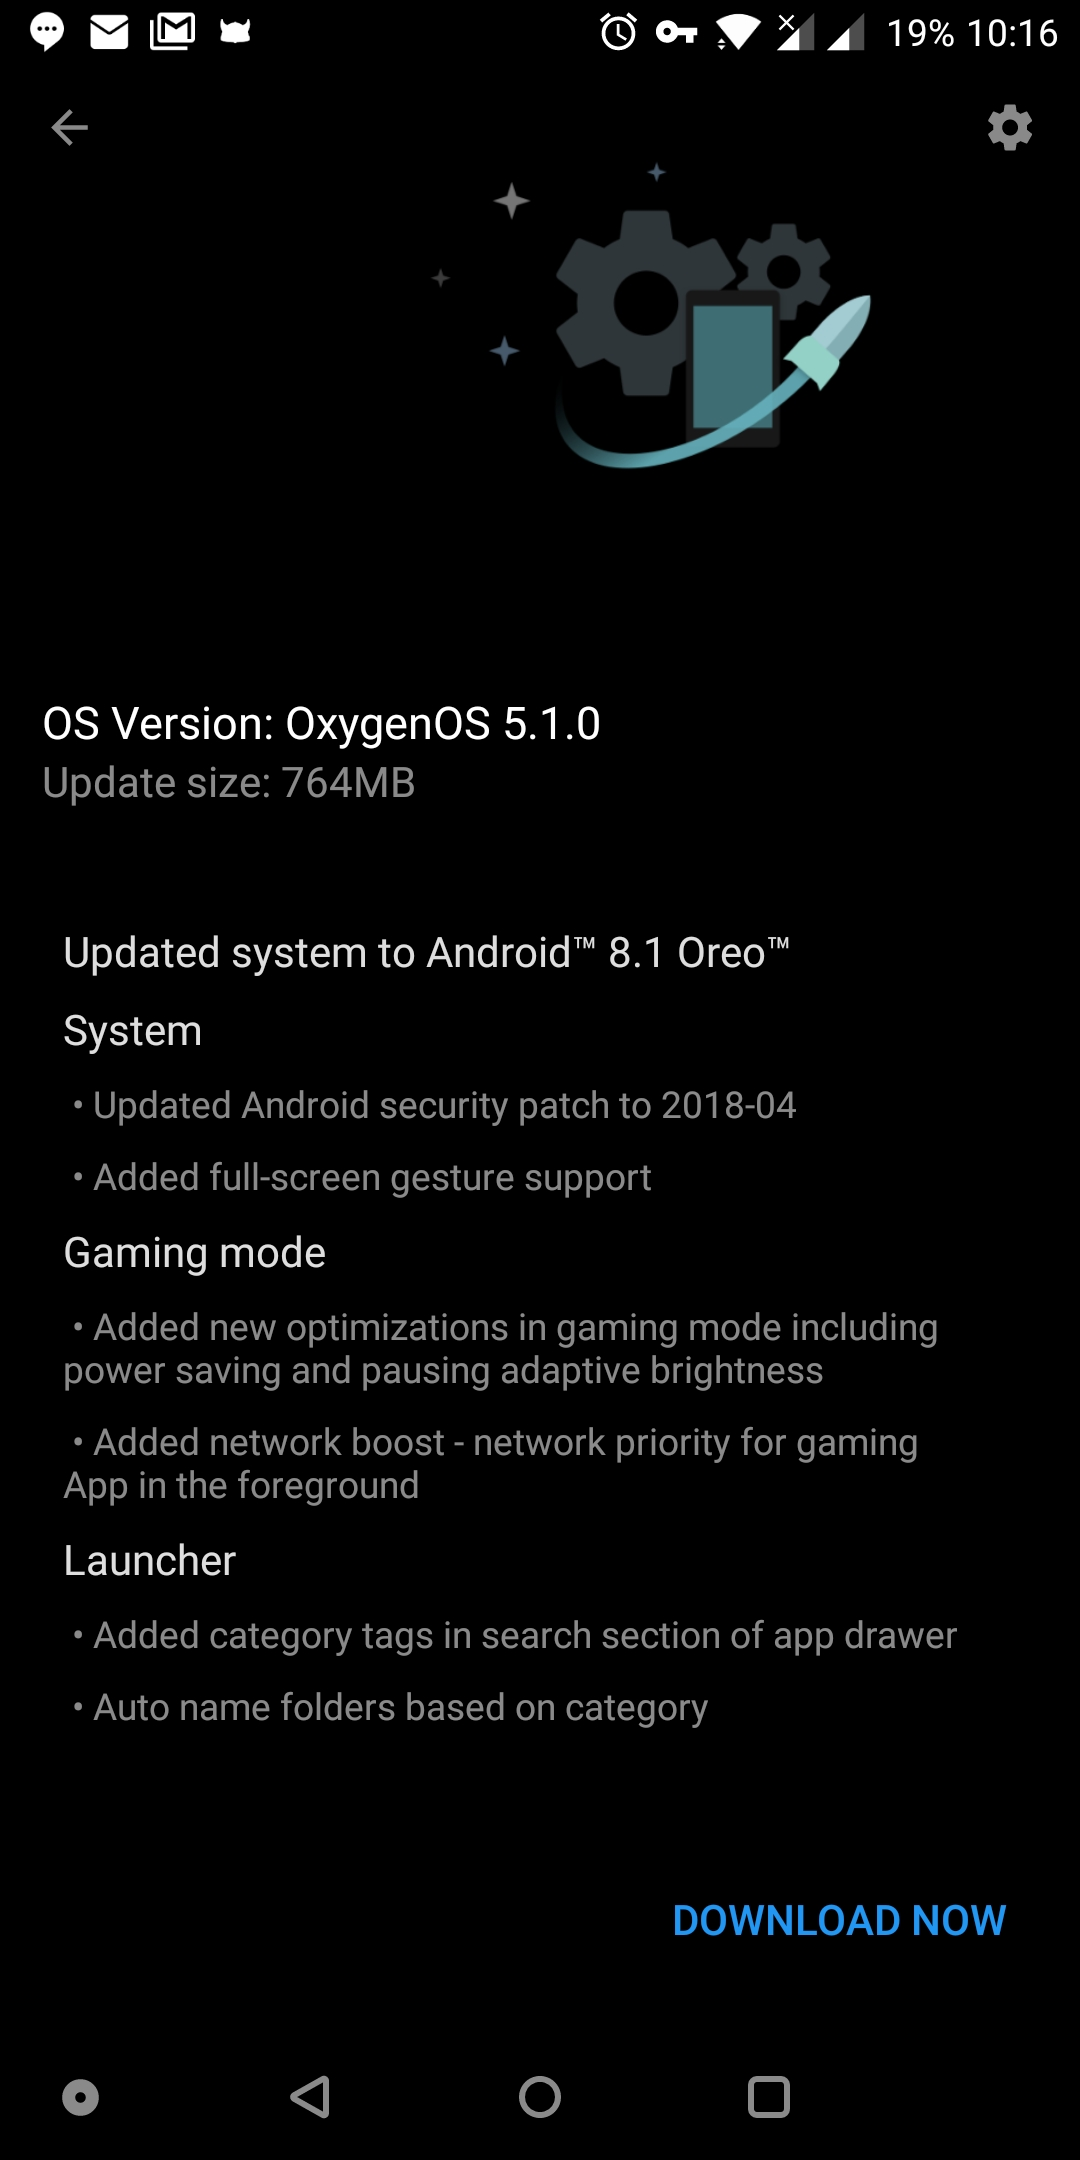 OxygenOS 5 1 0 update brings 'Swipe up to answer calls